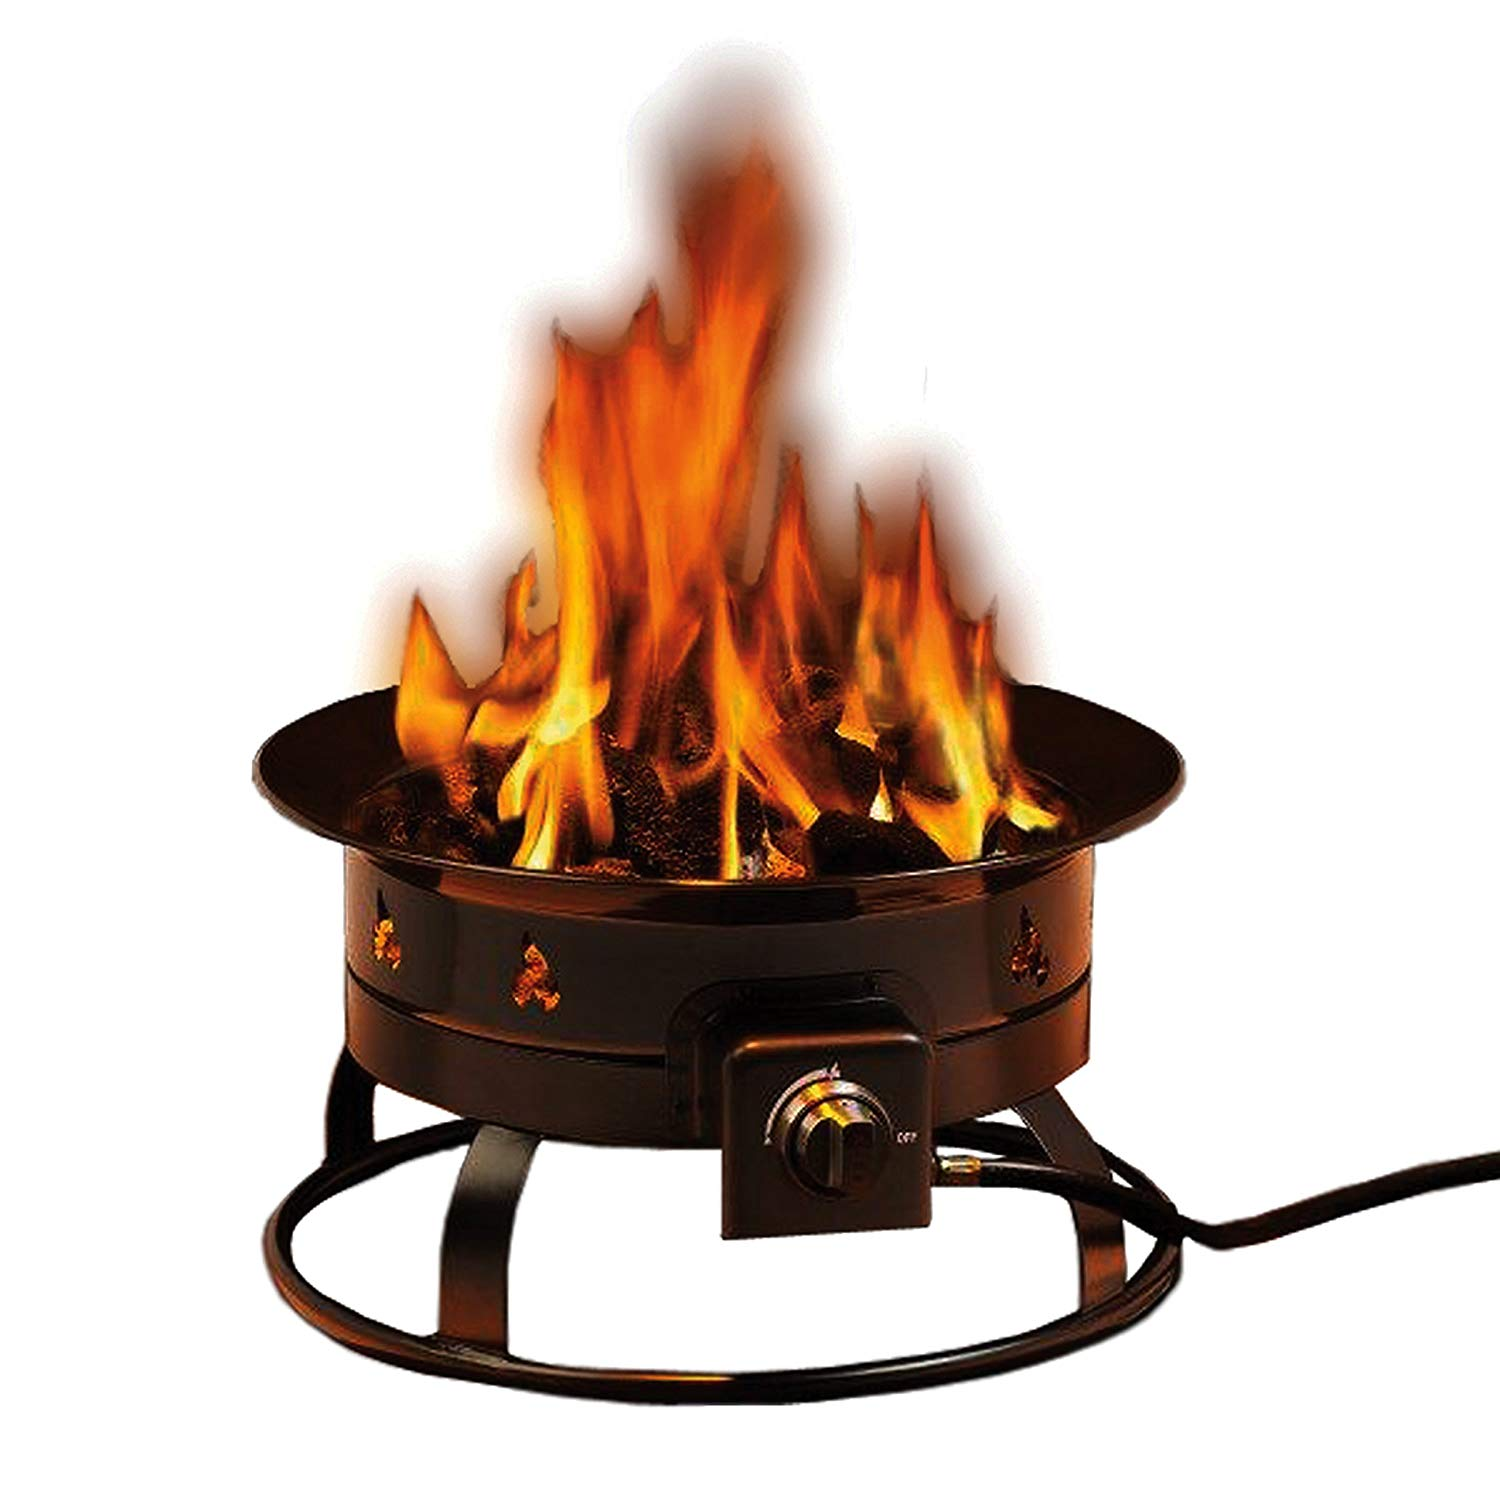 Heininger 5995 - Portable Propane Gas Fire Pit